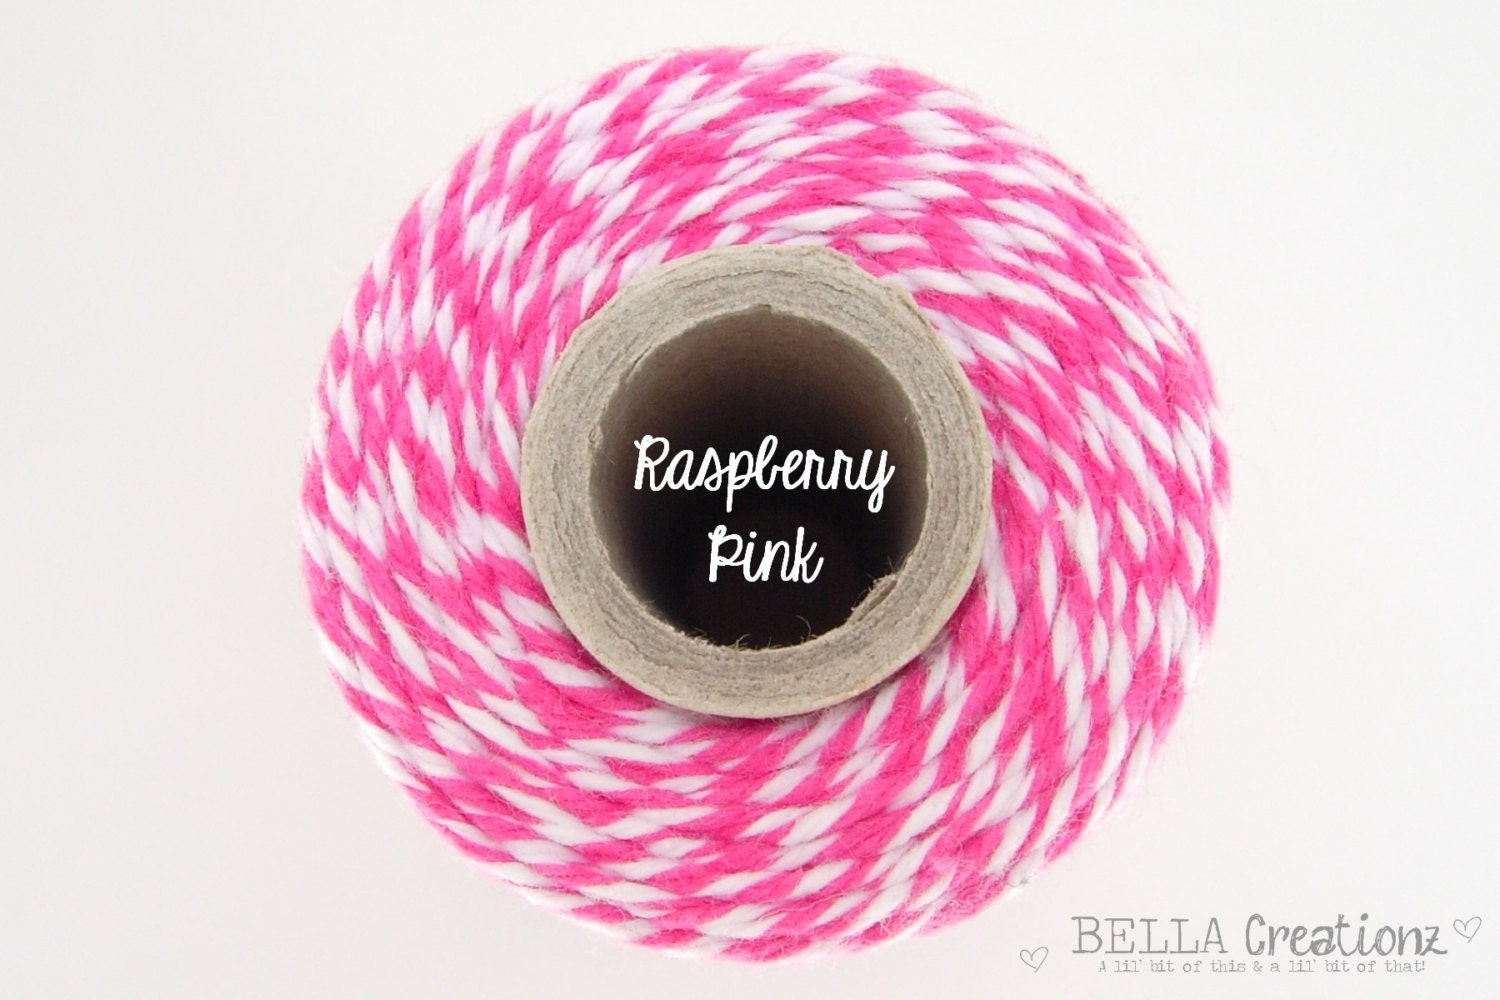 SALE - Raspberry Pink Bakers Twine by Timeless Twine